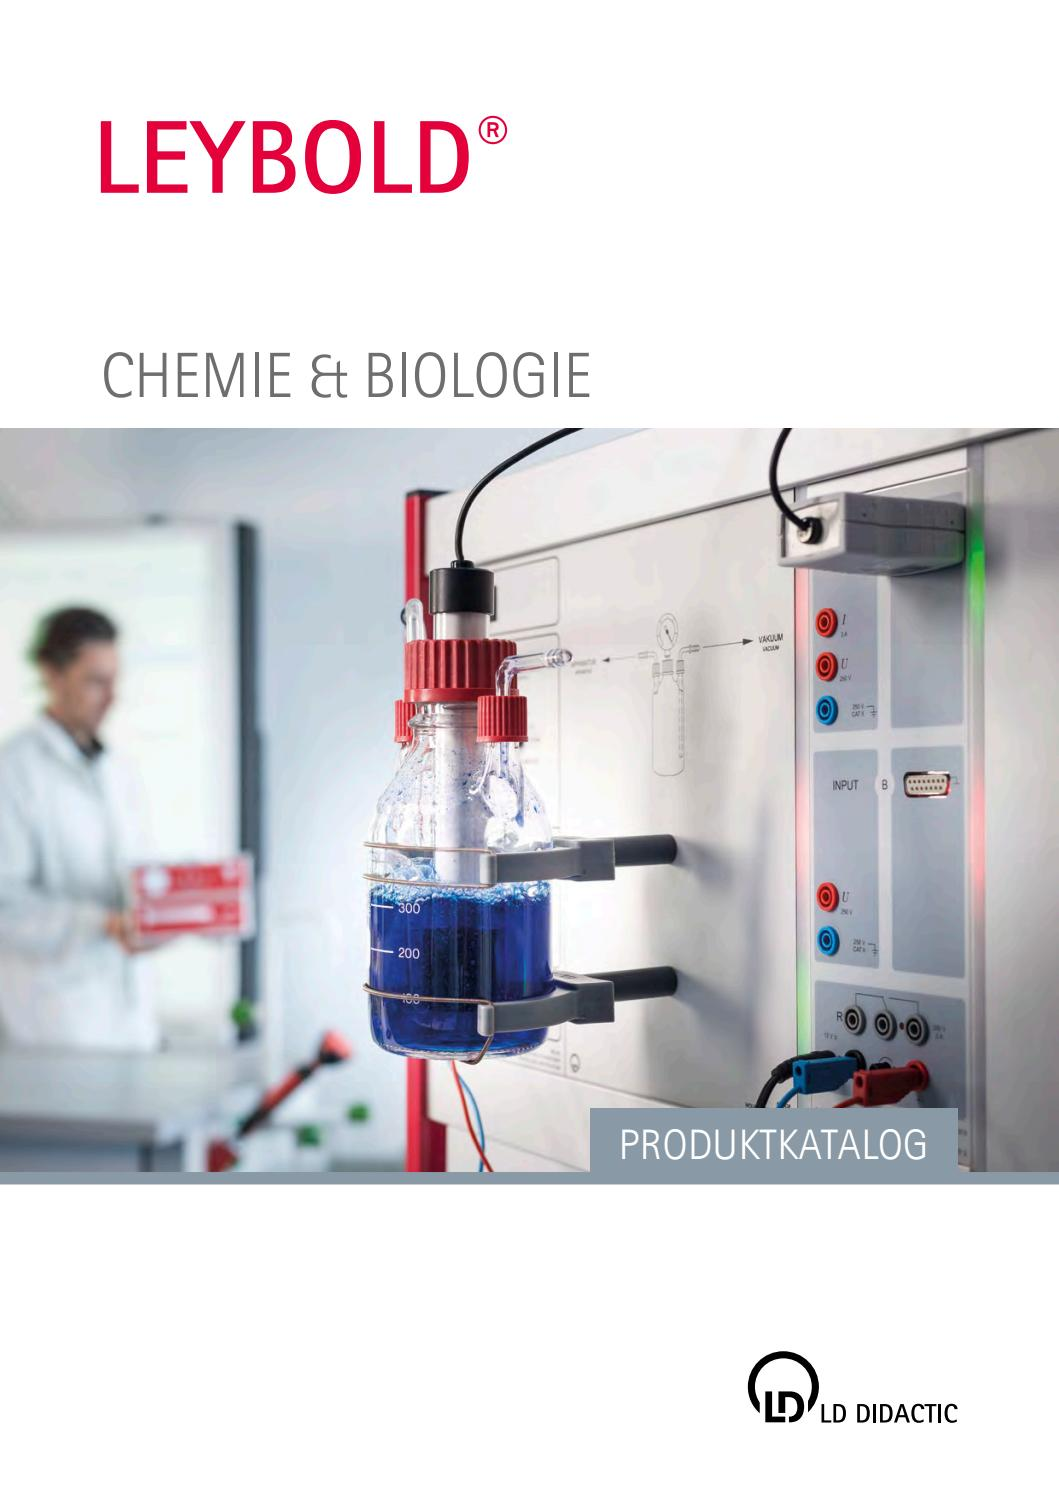 Chemie biologie produktkatalog by LD Didactic GmbH - issuu